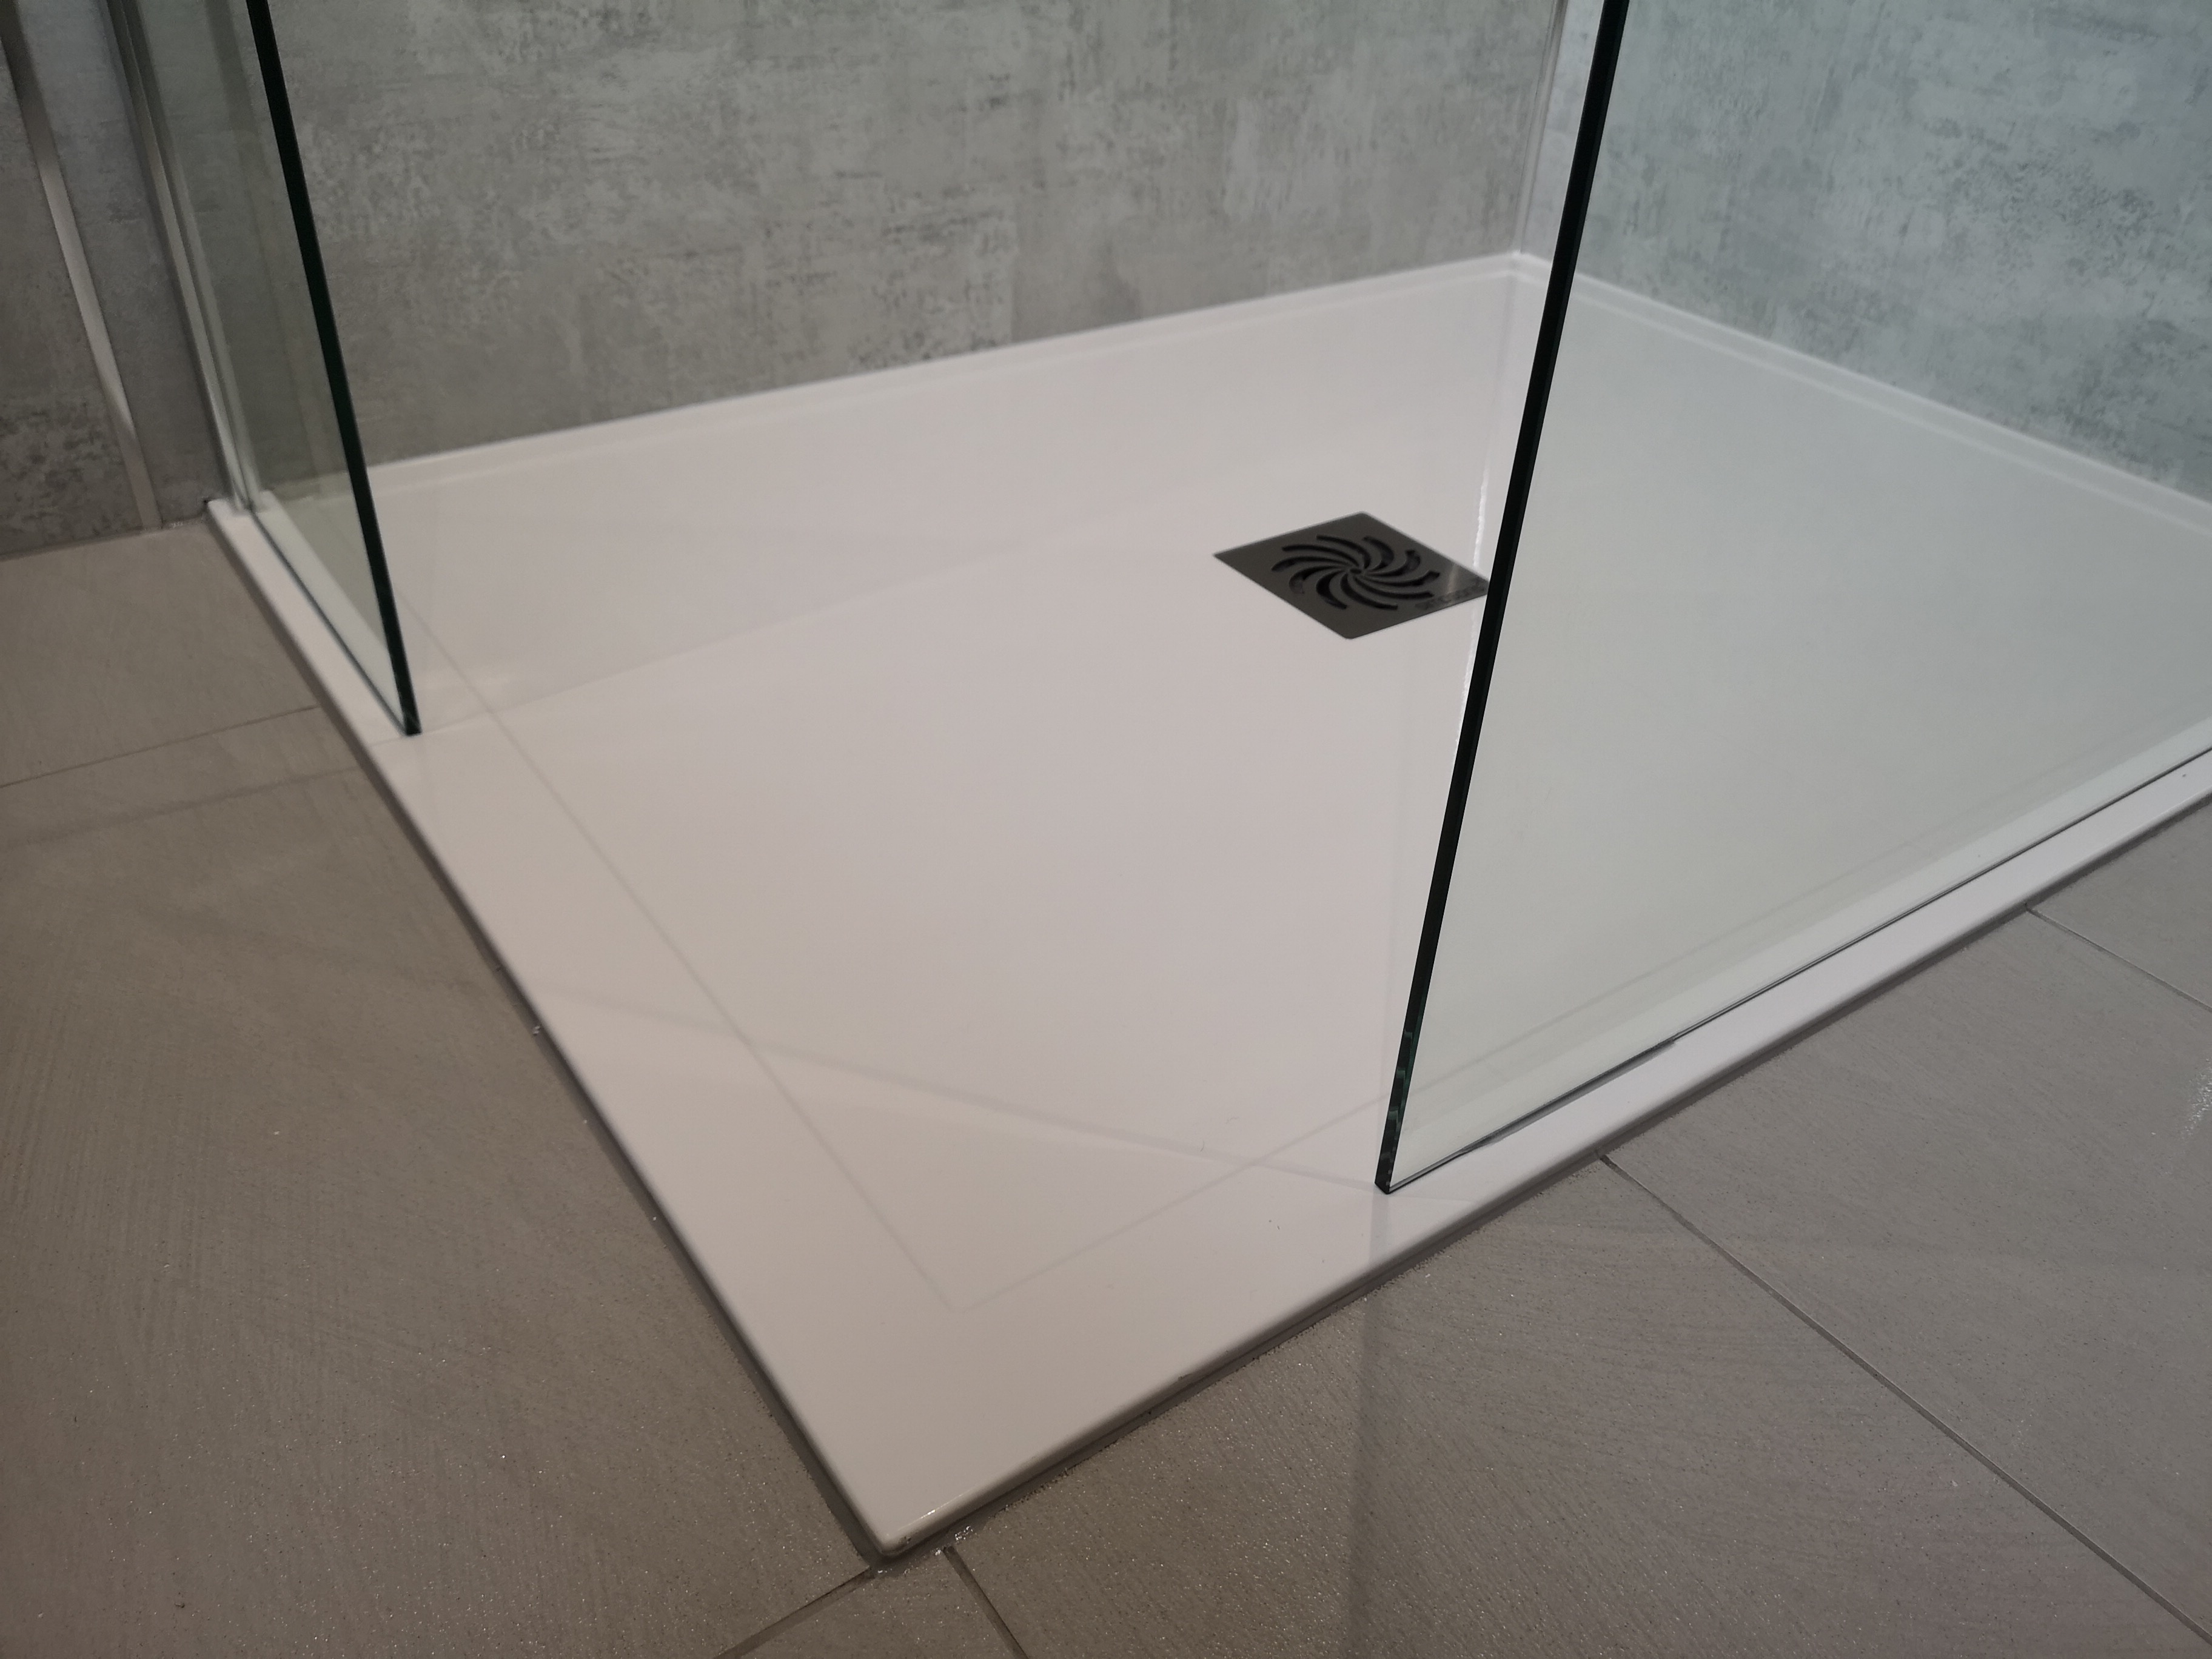 Grey Bathroom gloss wall and floor tiles with low level shower tray.